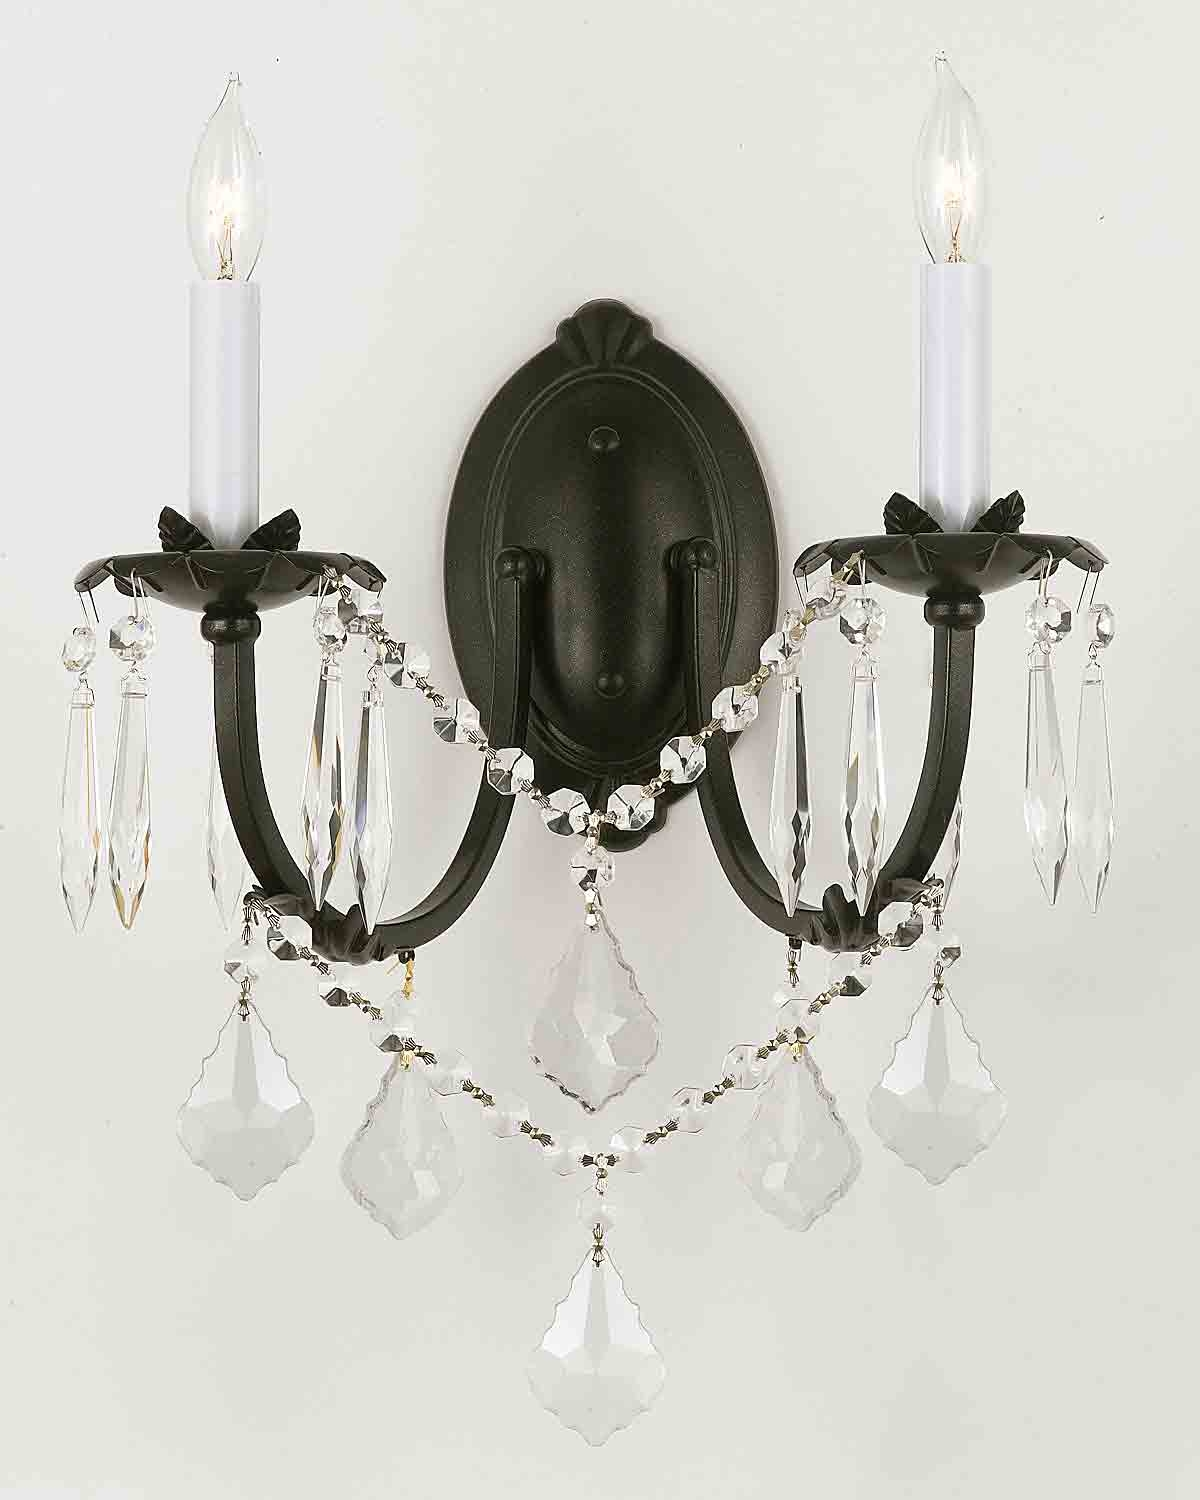 Wall Chandelier Crystal Wall Scones Wall Lighting Fixtures Inside Chandelier Wall Lights (Image 11 of 15)